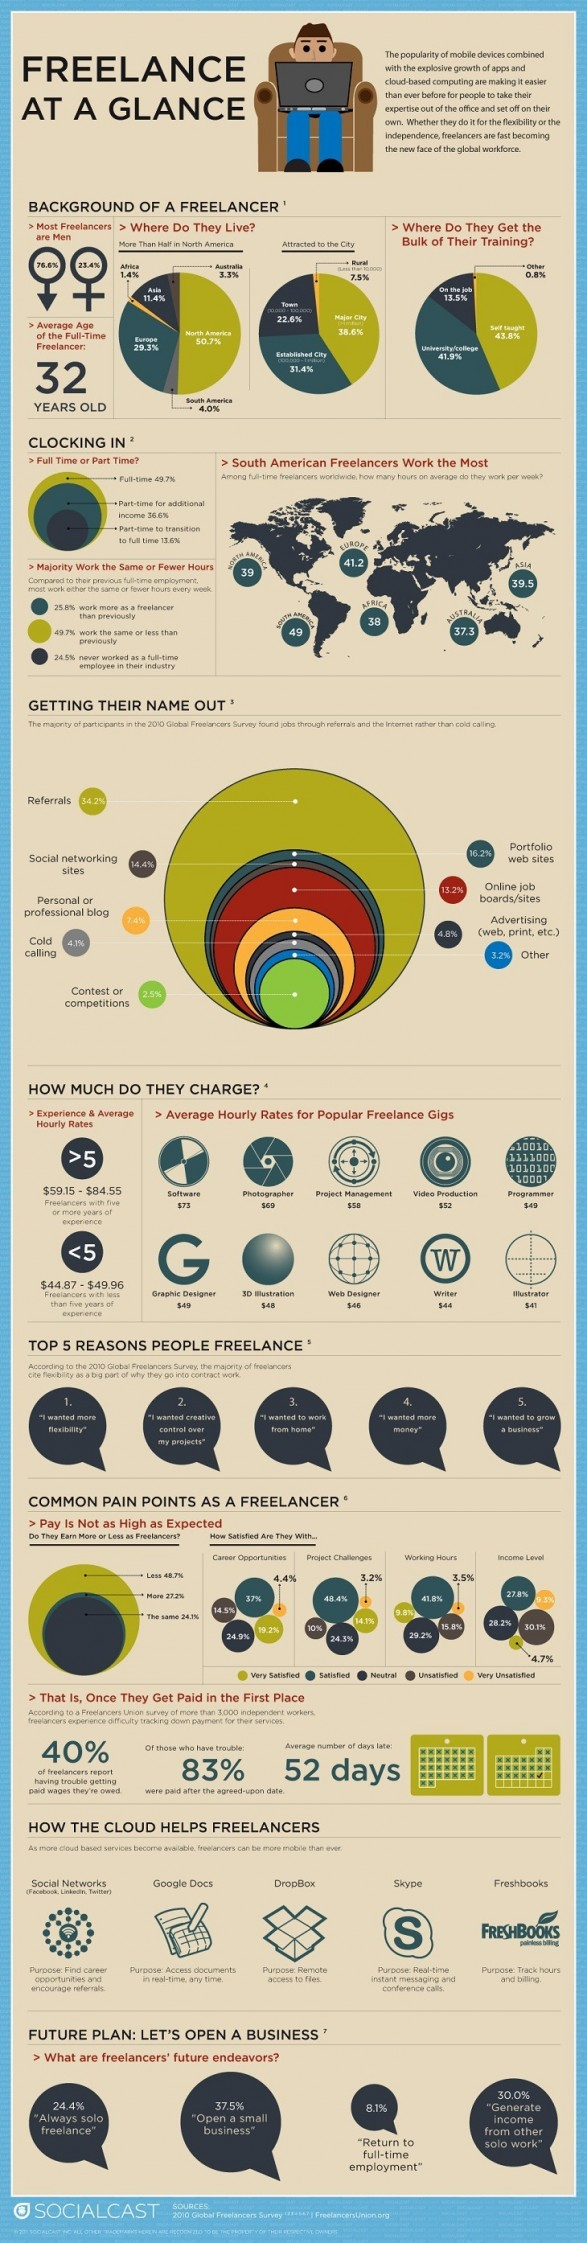 Freelancers at a glance